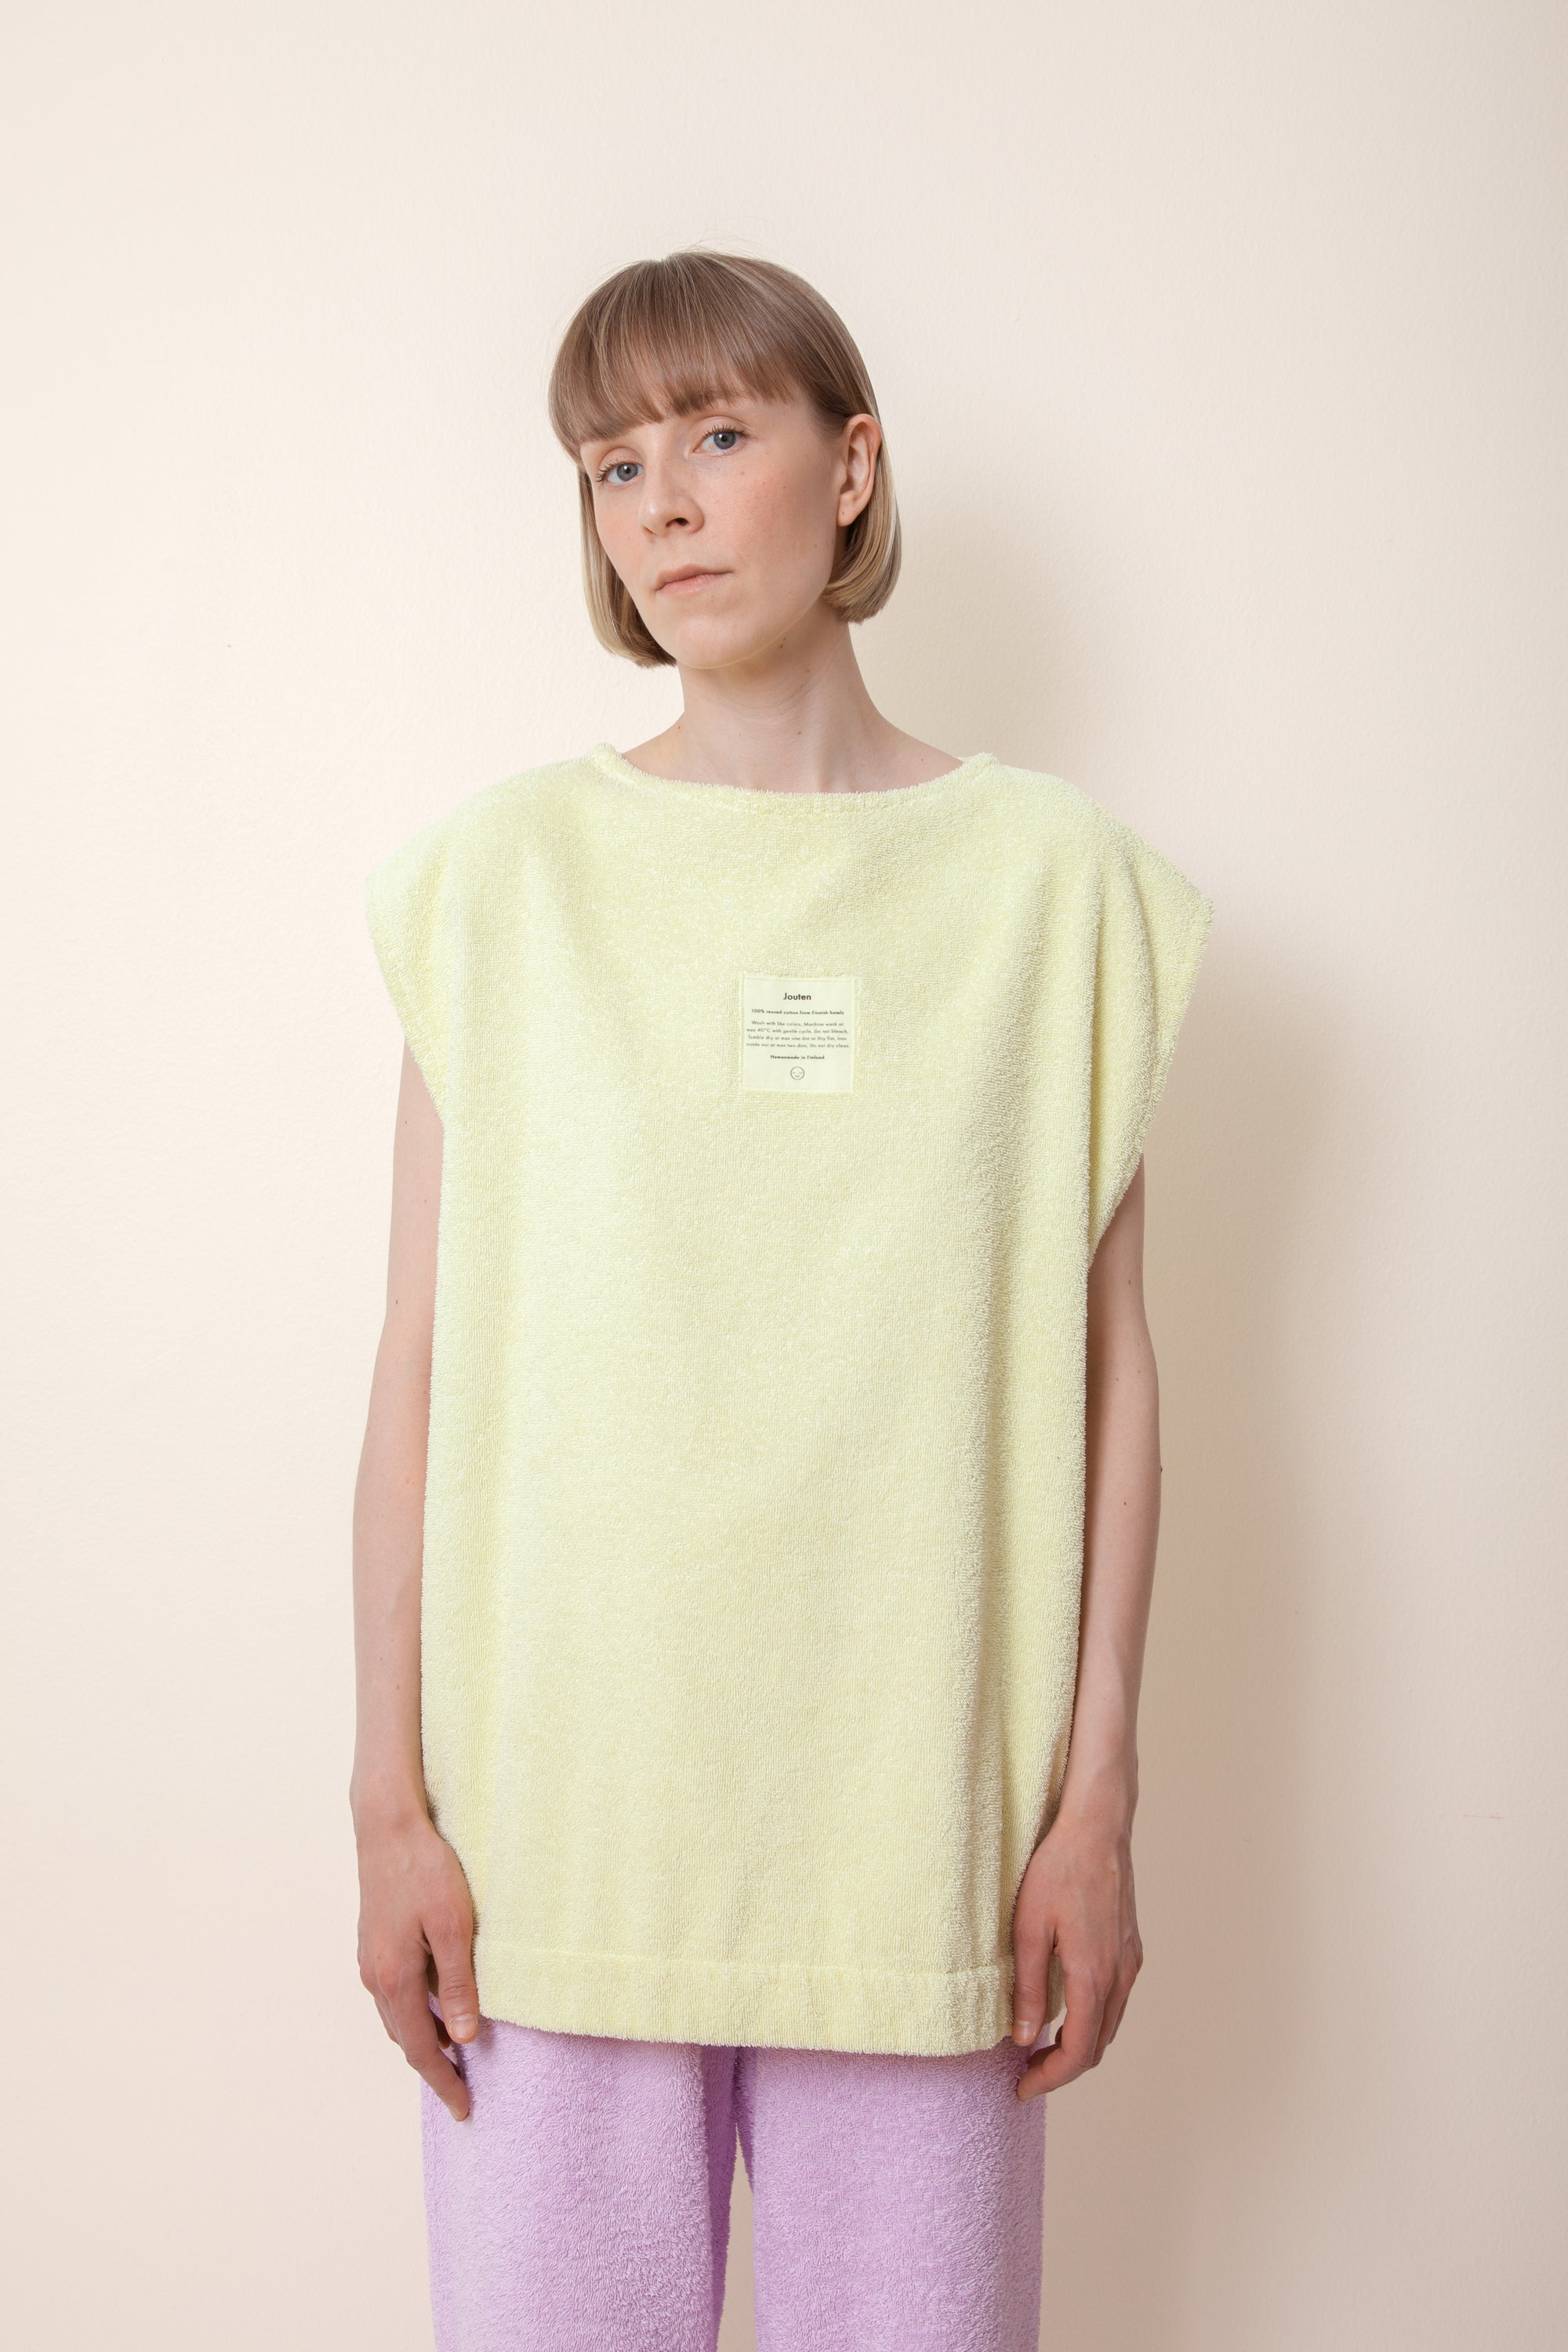 Unisex Sleeveless Terry Shirt in Lemon